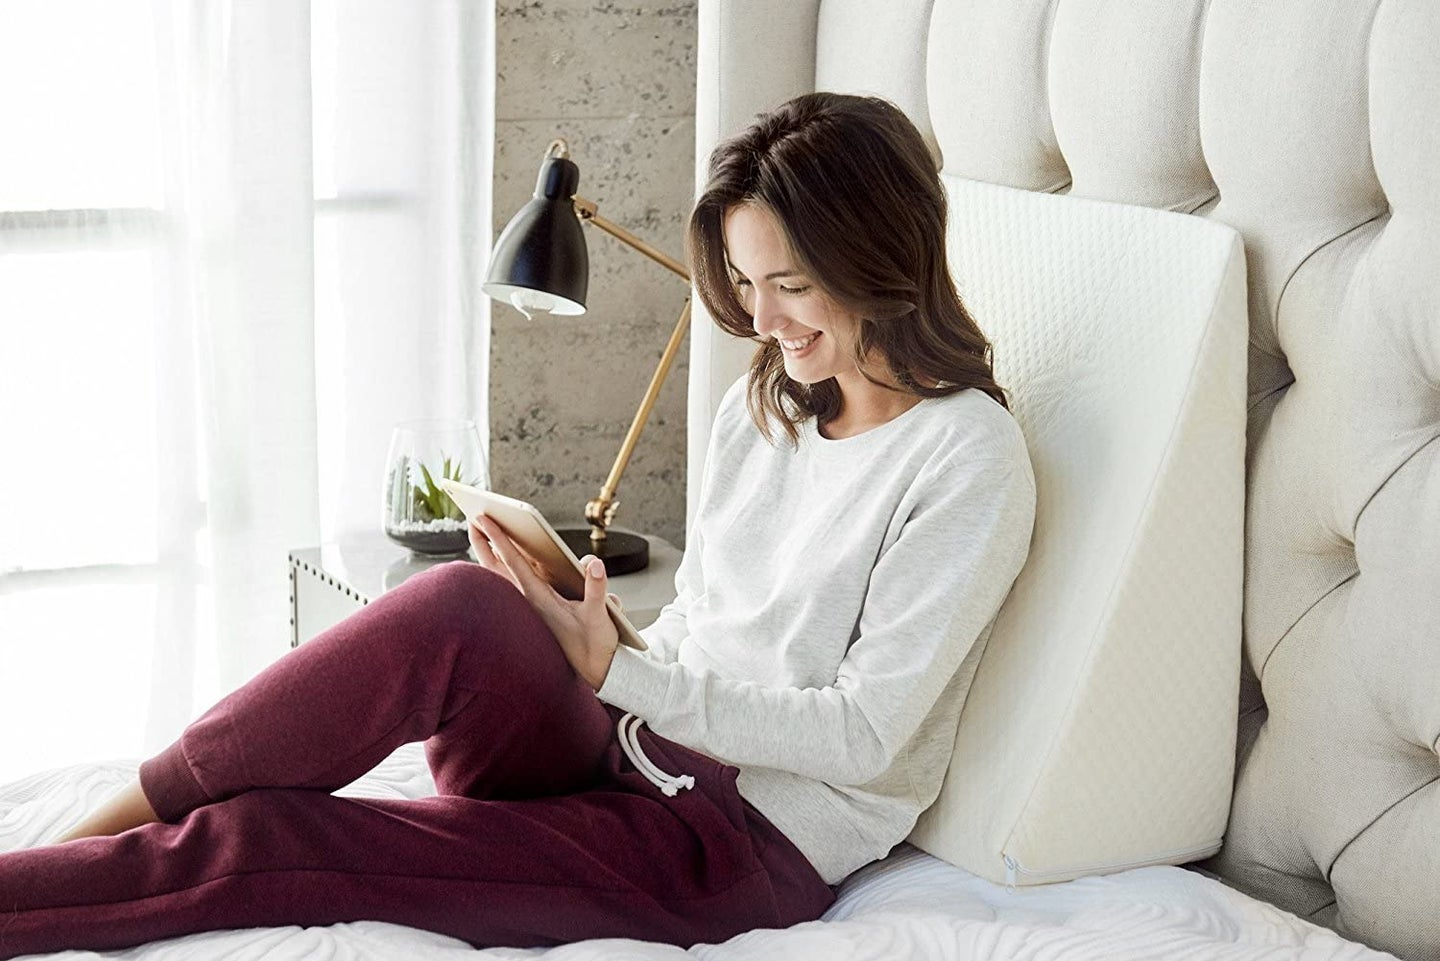 person sitting on bed with wedge pillow